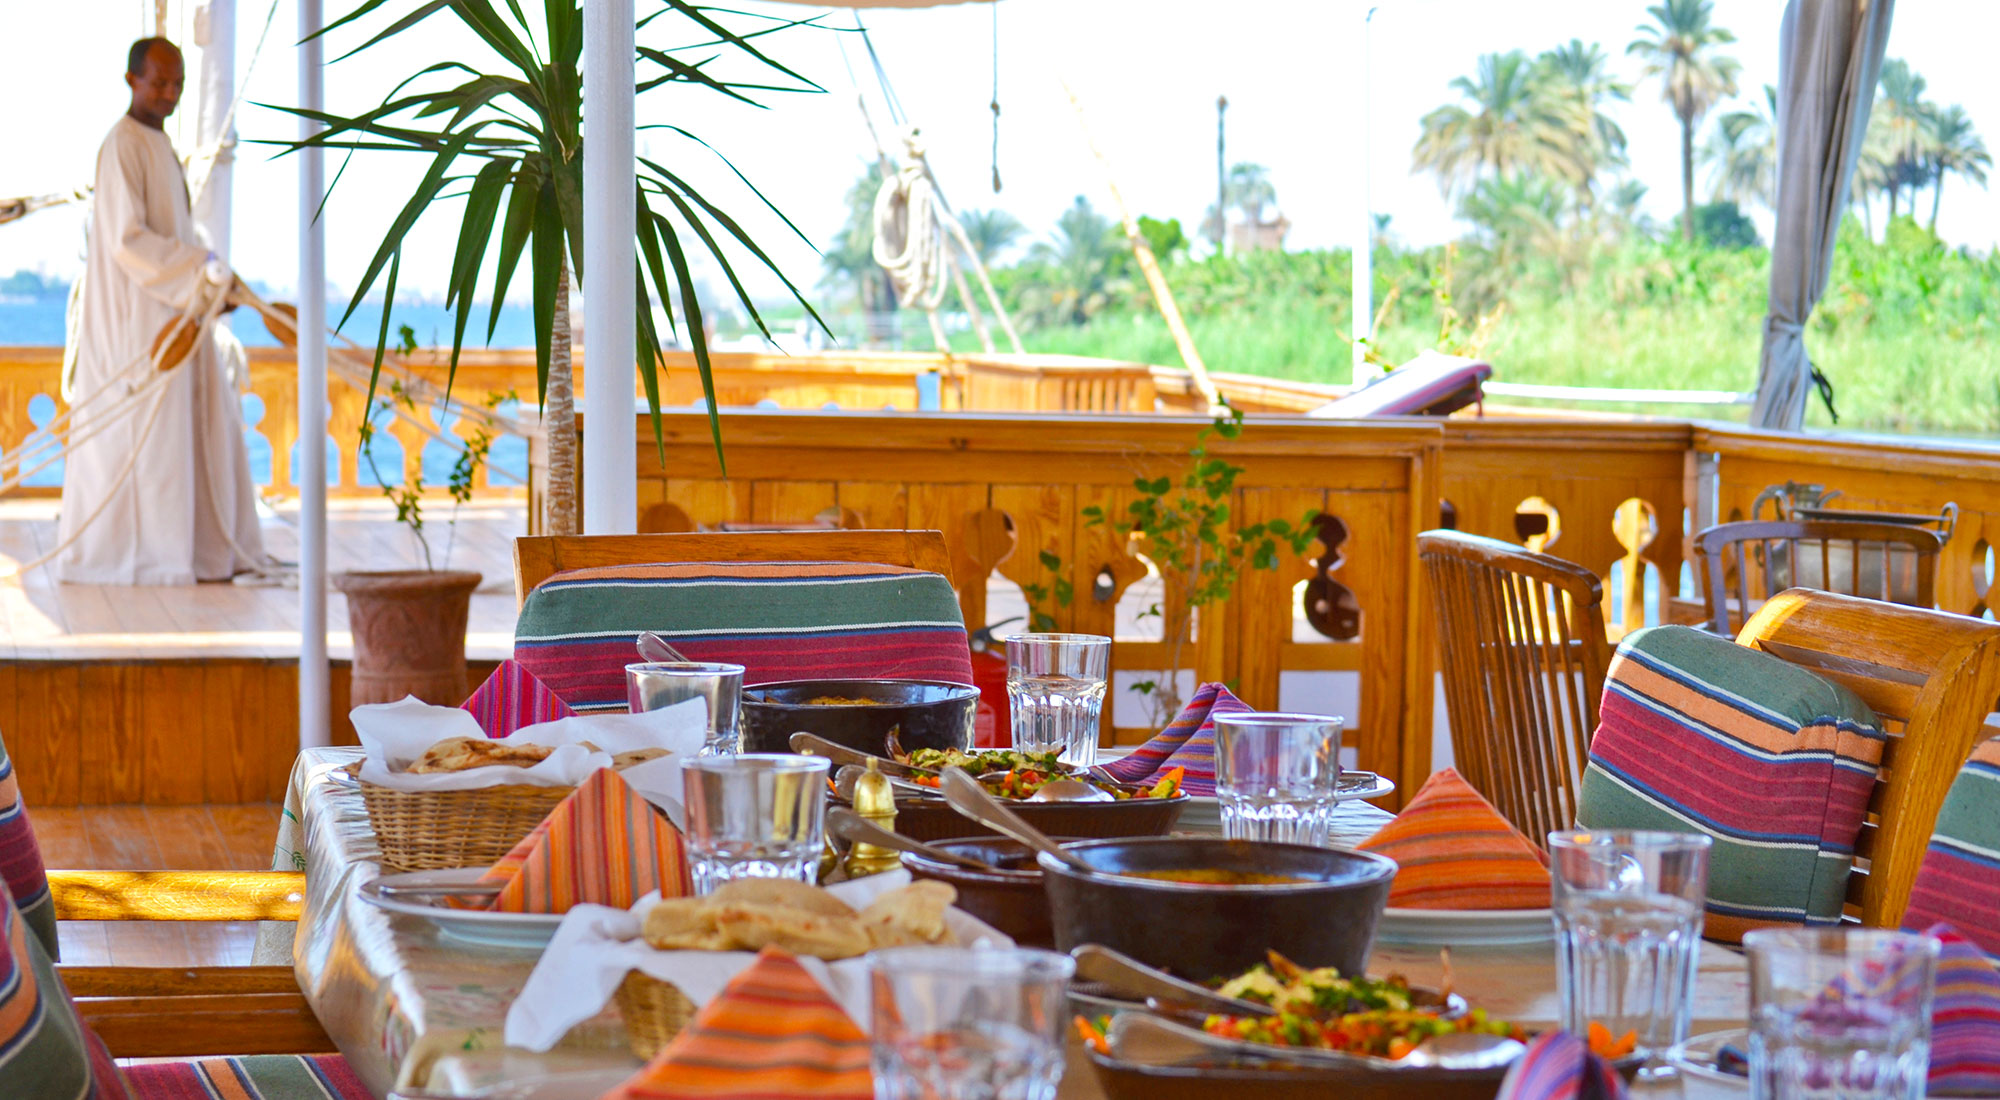 Fresh and delicious food, served on the sundeck